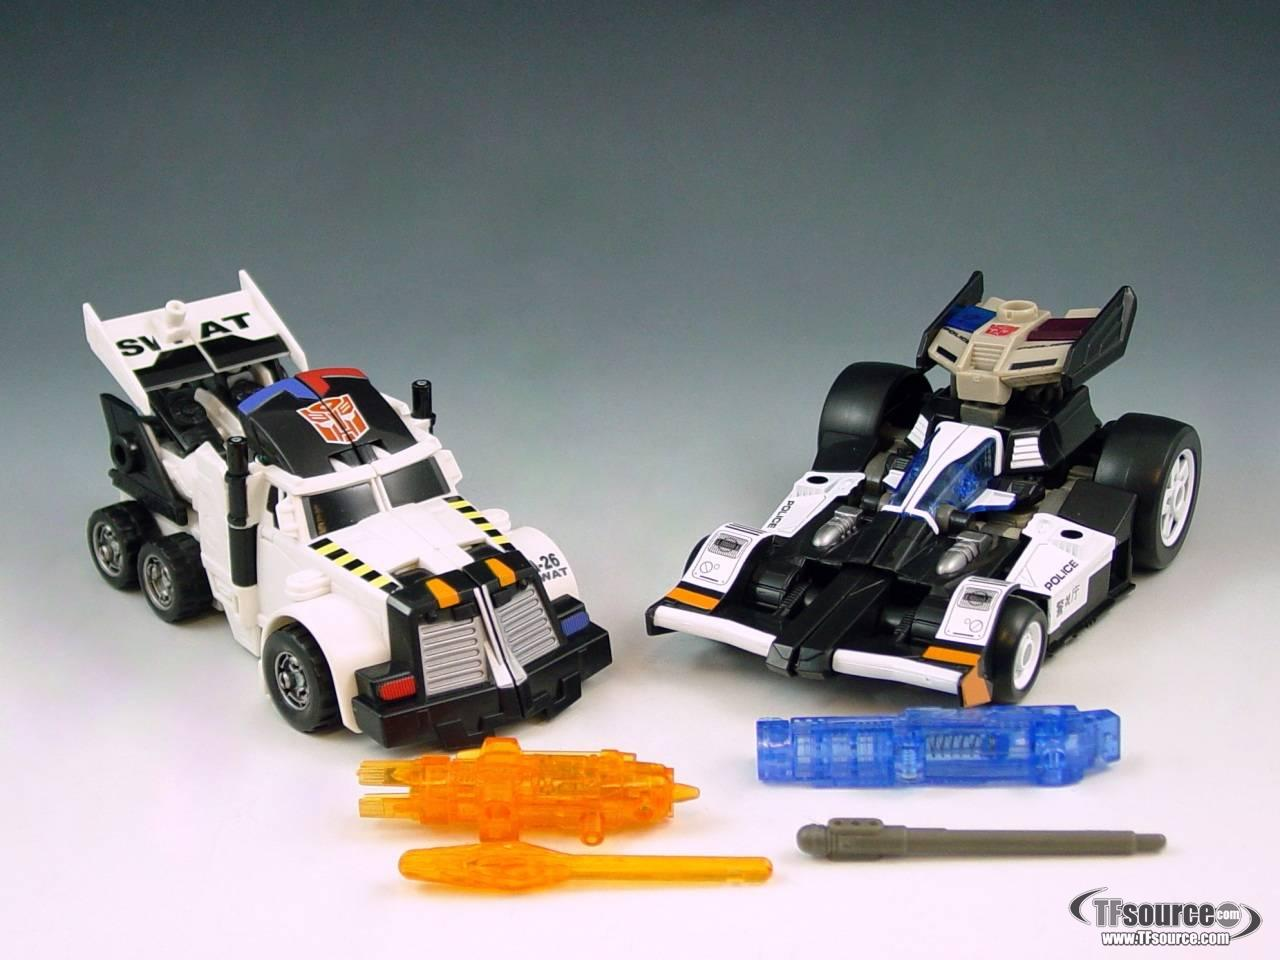 Energon - S.W.A.T. Team (Prowl and Checkpoint) - Loose - 100% Complete